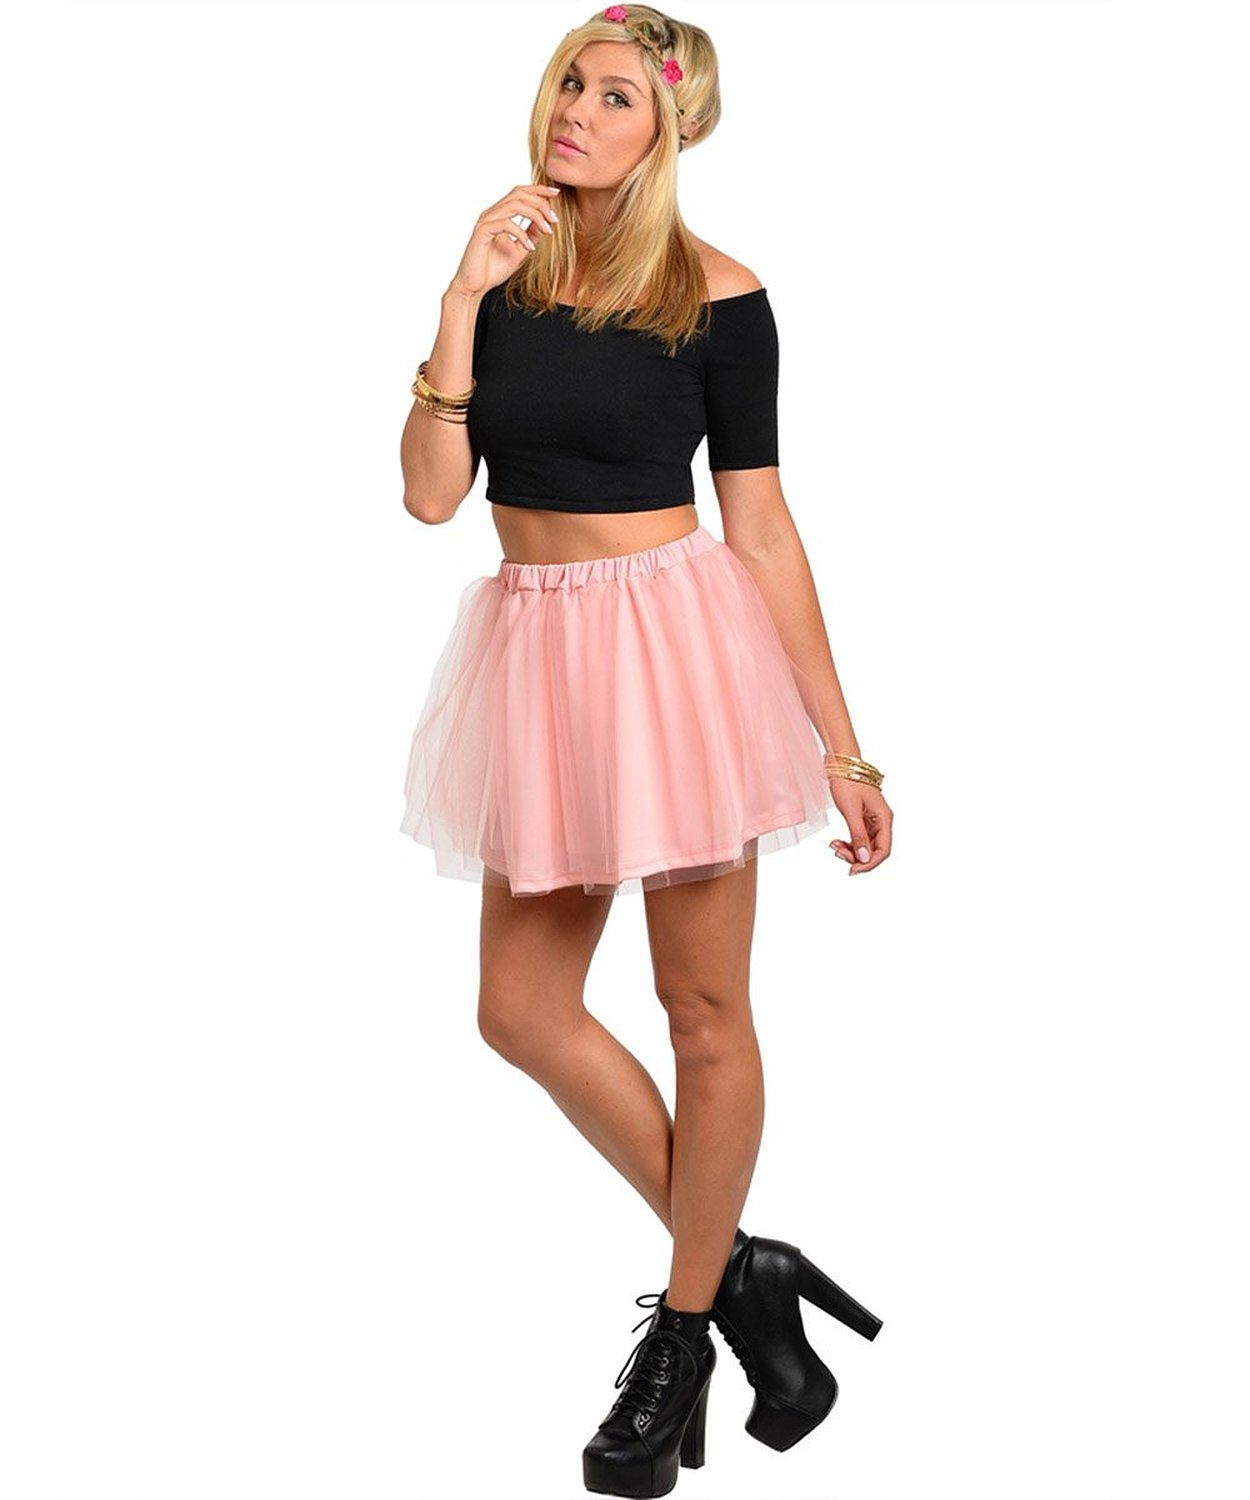 Simplicity Lady Women Cute & Flirty Short Tutu Skirt w/ Layers of Sheer Tulle S at Amazon Women's Clothing store: